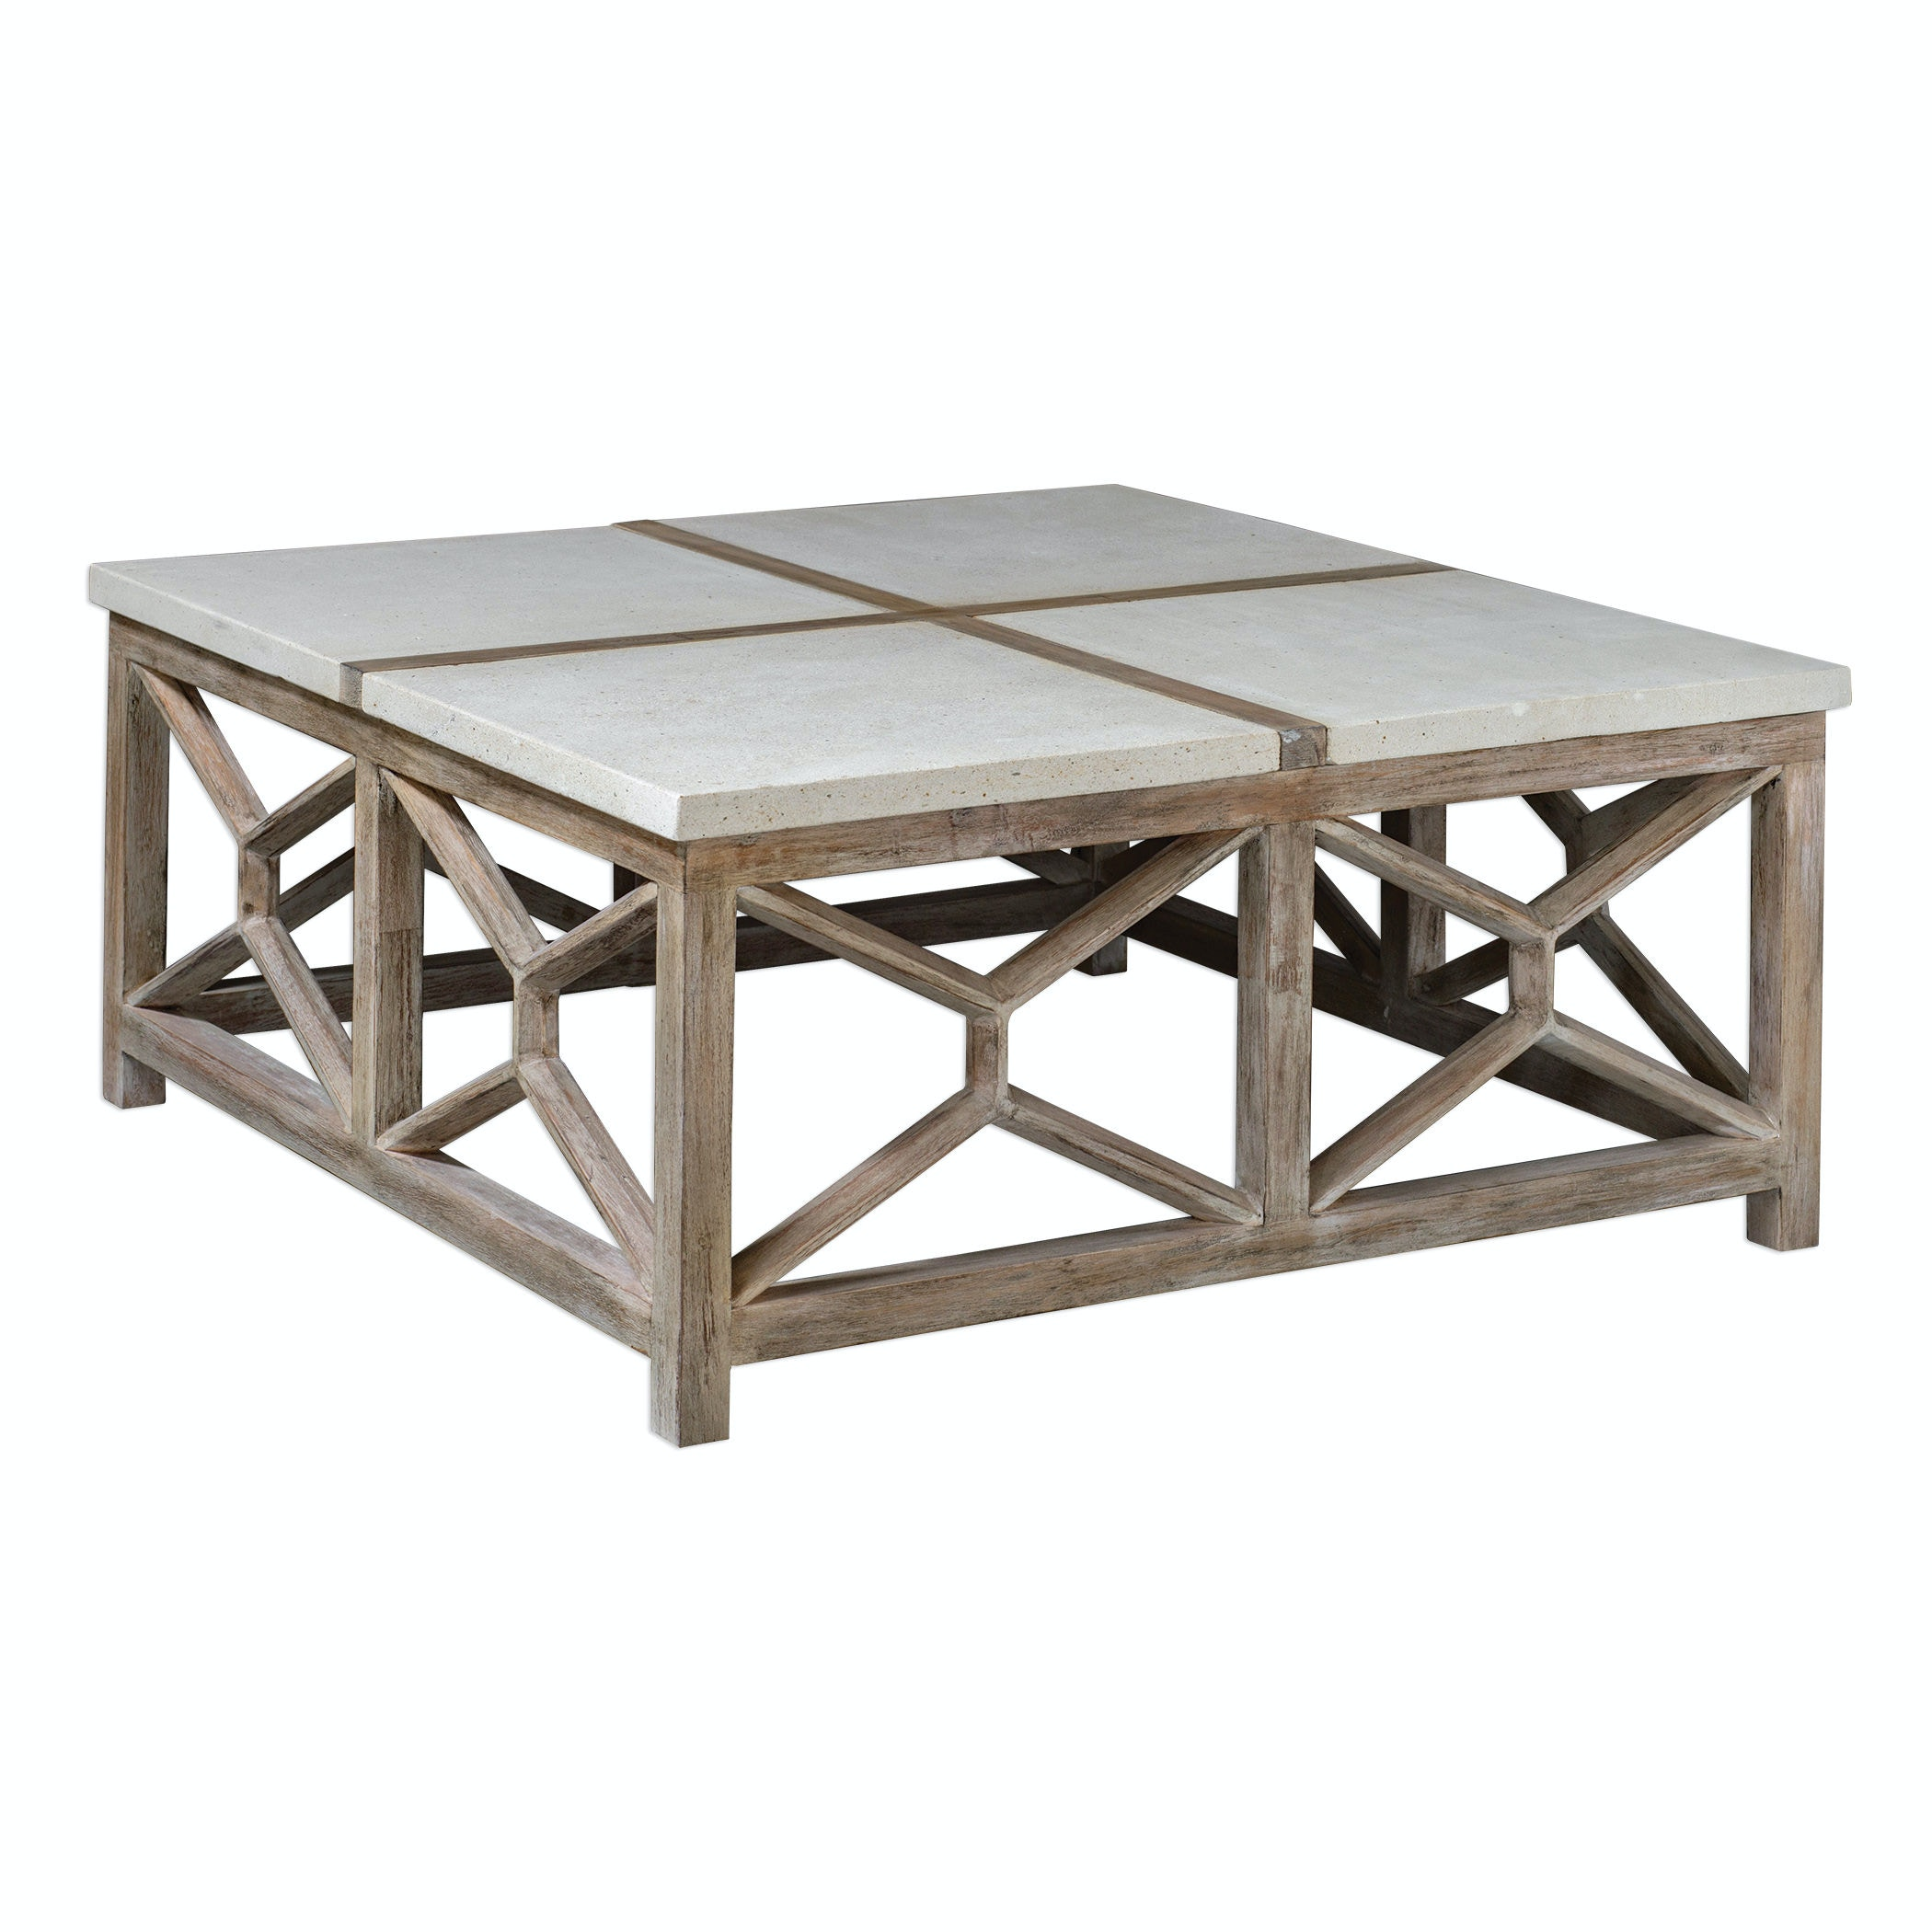 Incroyable Uttermost Catali Stone Coffee Table 25885